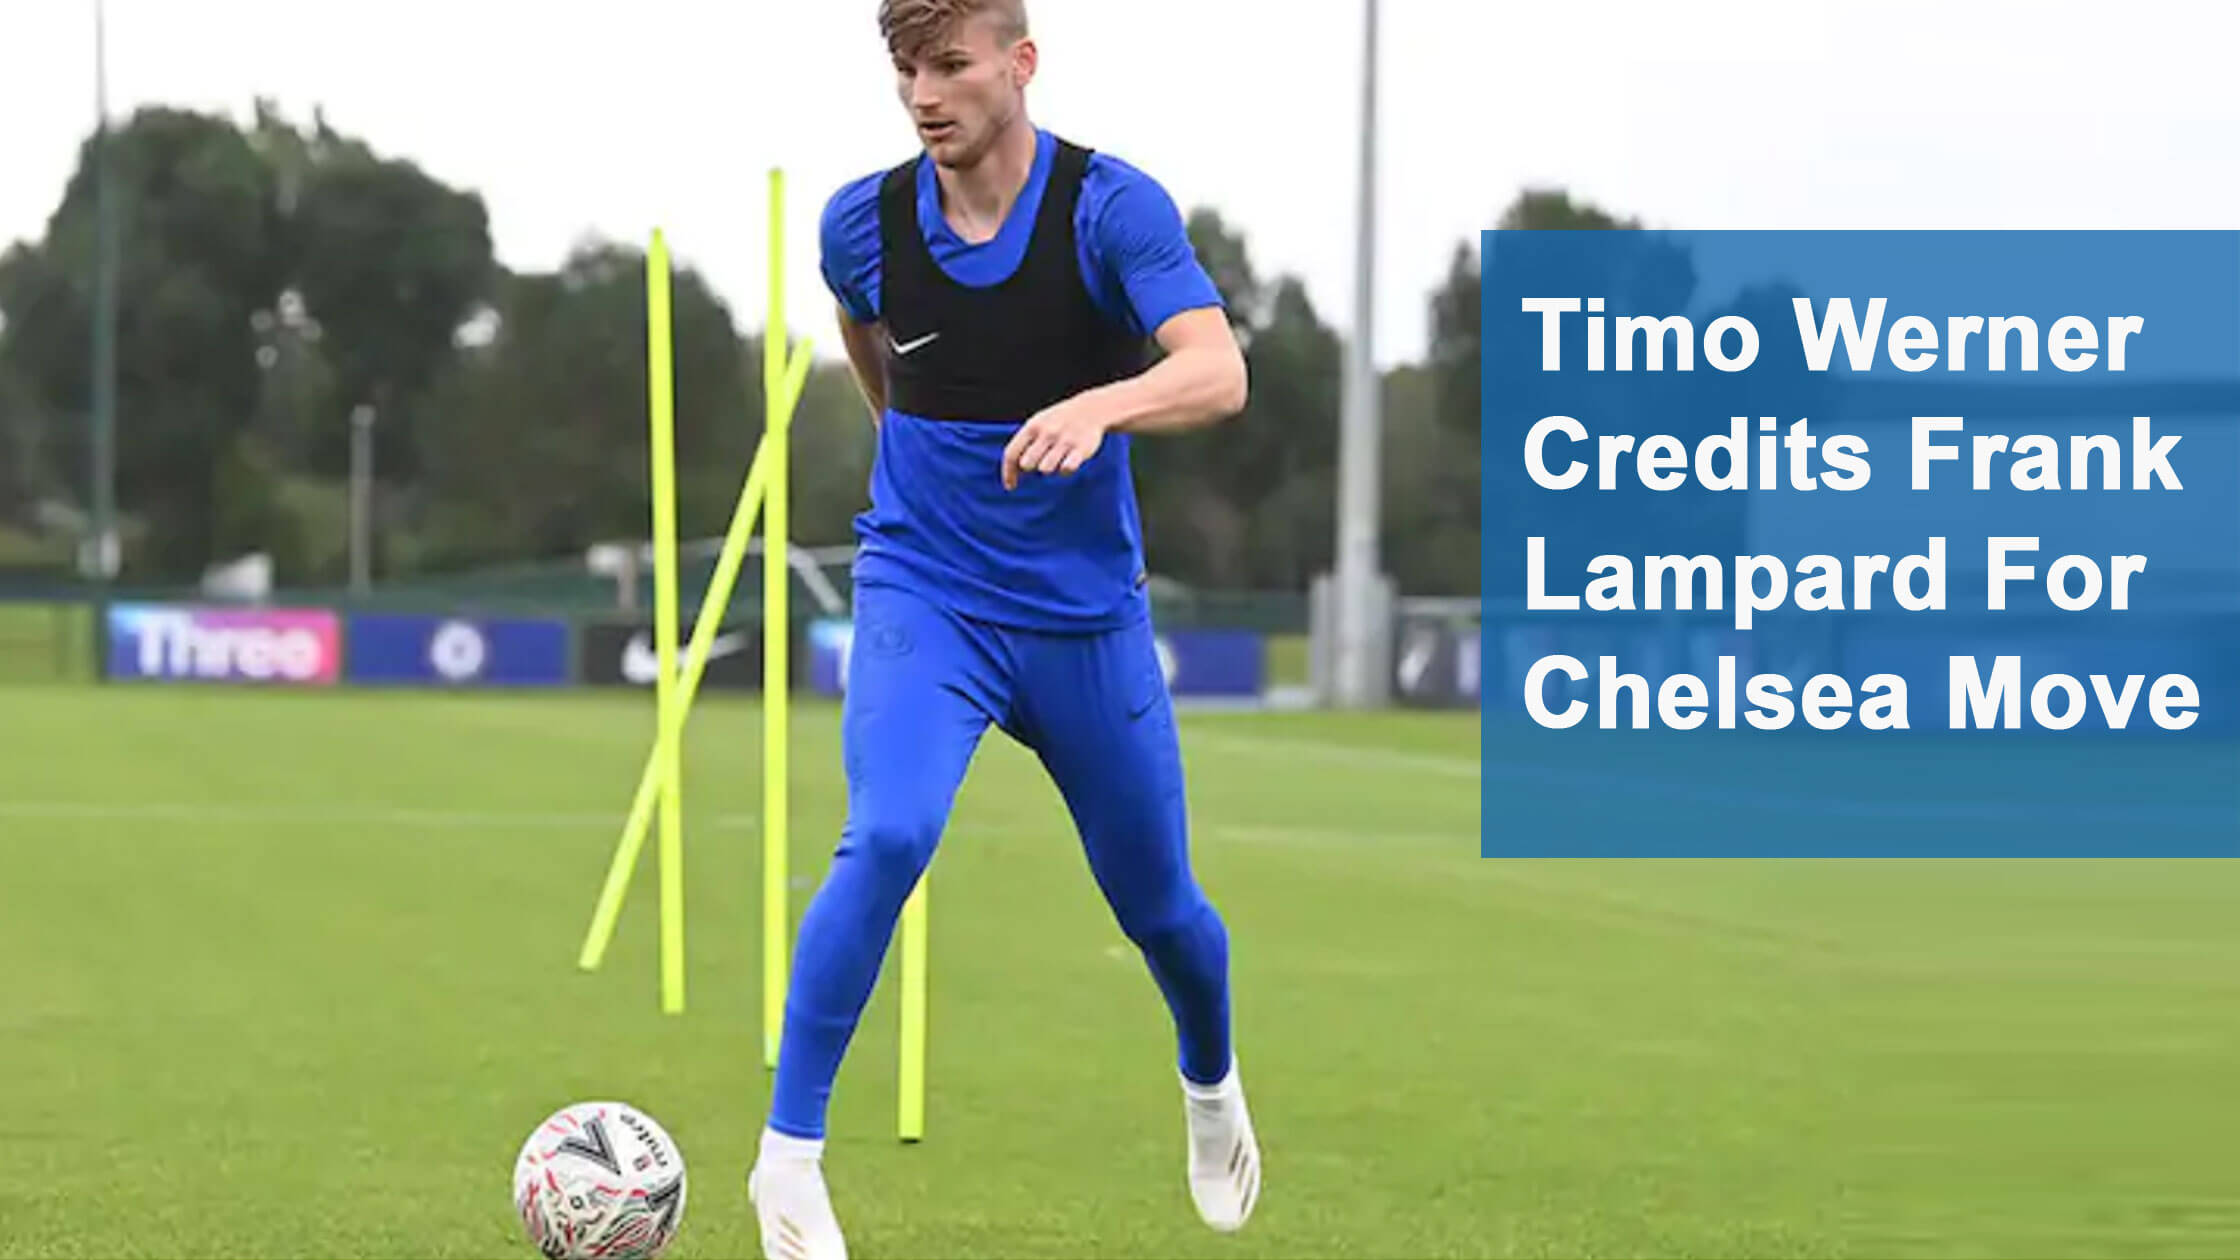 Timo Werner Credits Frank Lampard For Chelsea Move